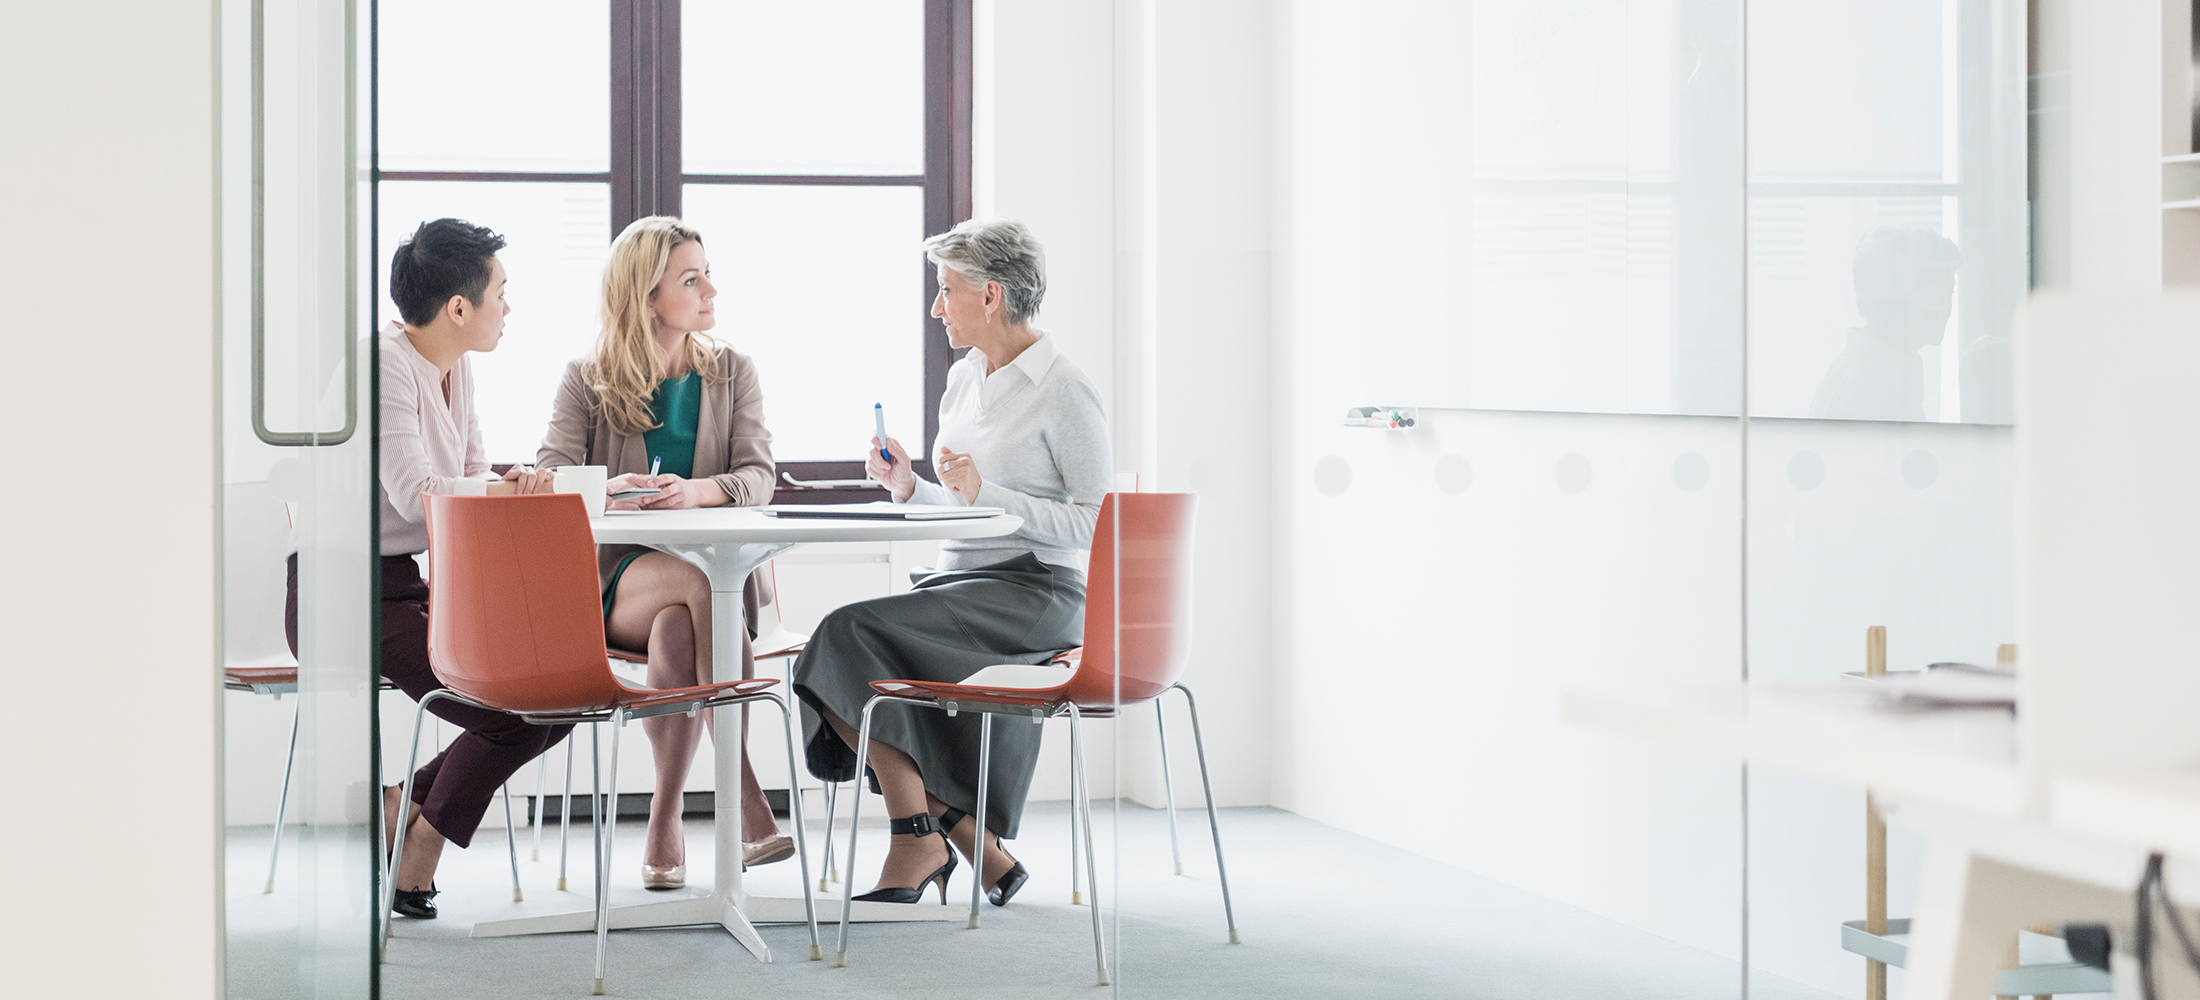 Three women sitting at table in modern office